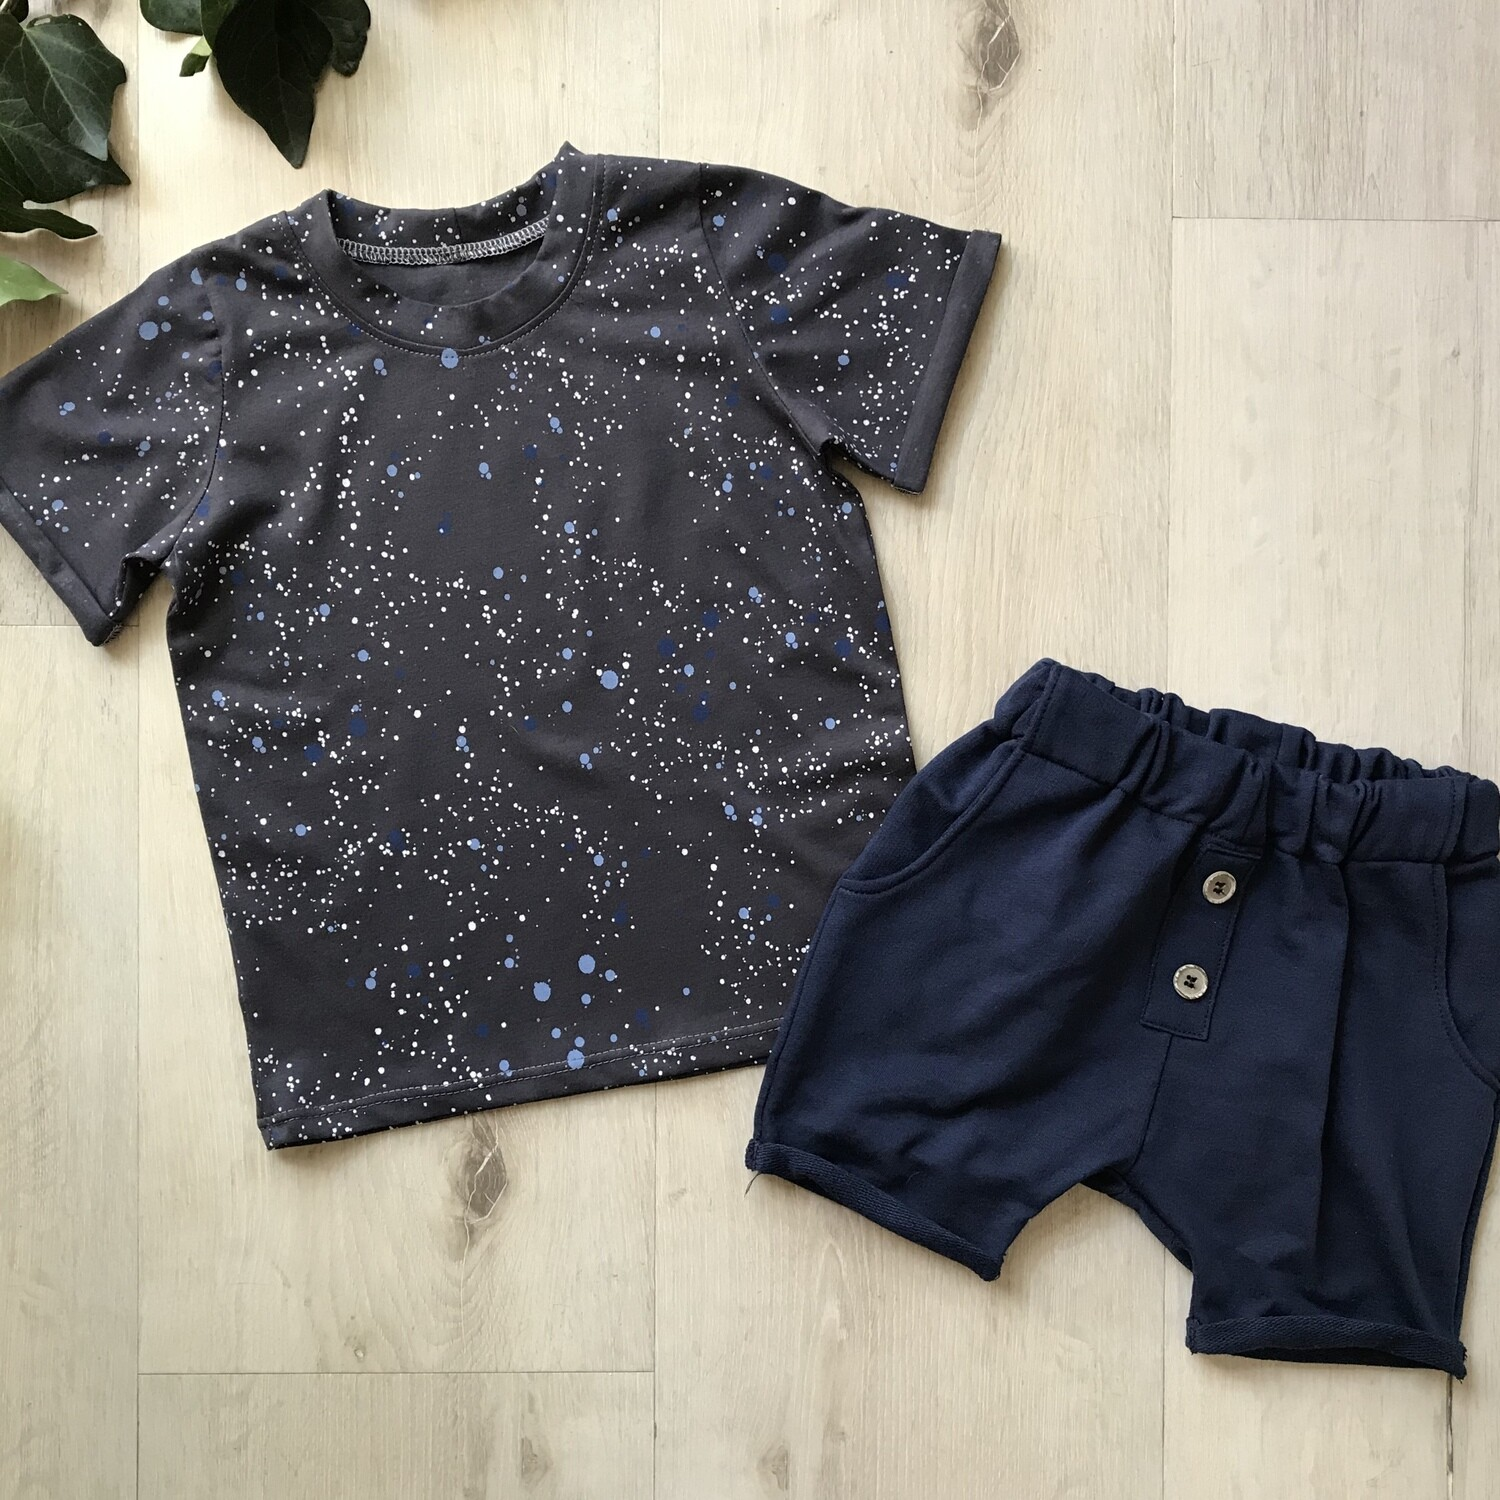 Charcoal spotty tshirt with navy lounge shorts